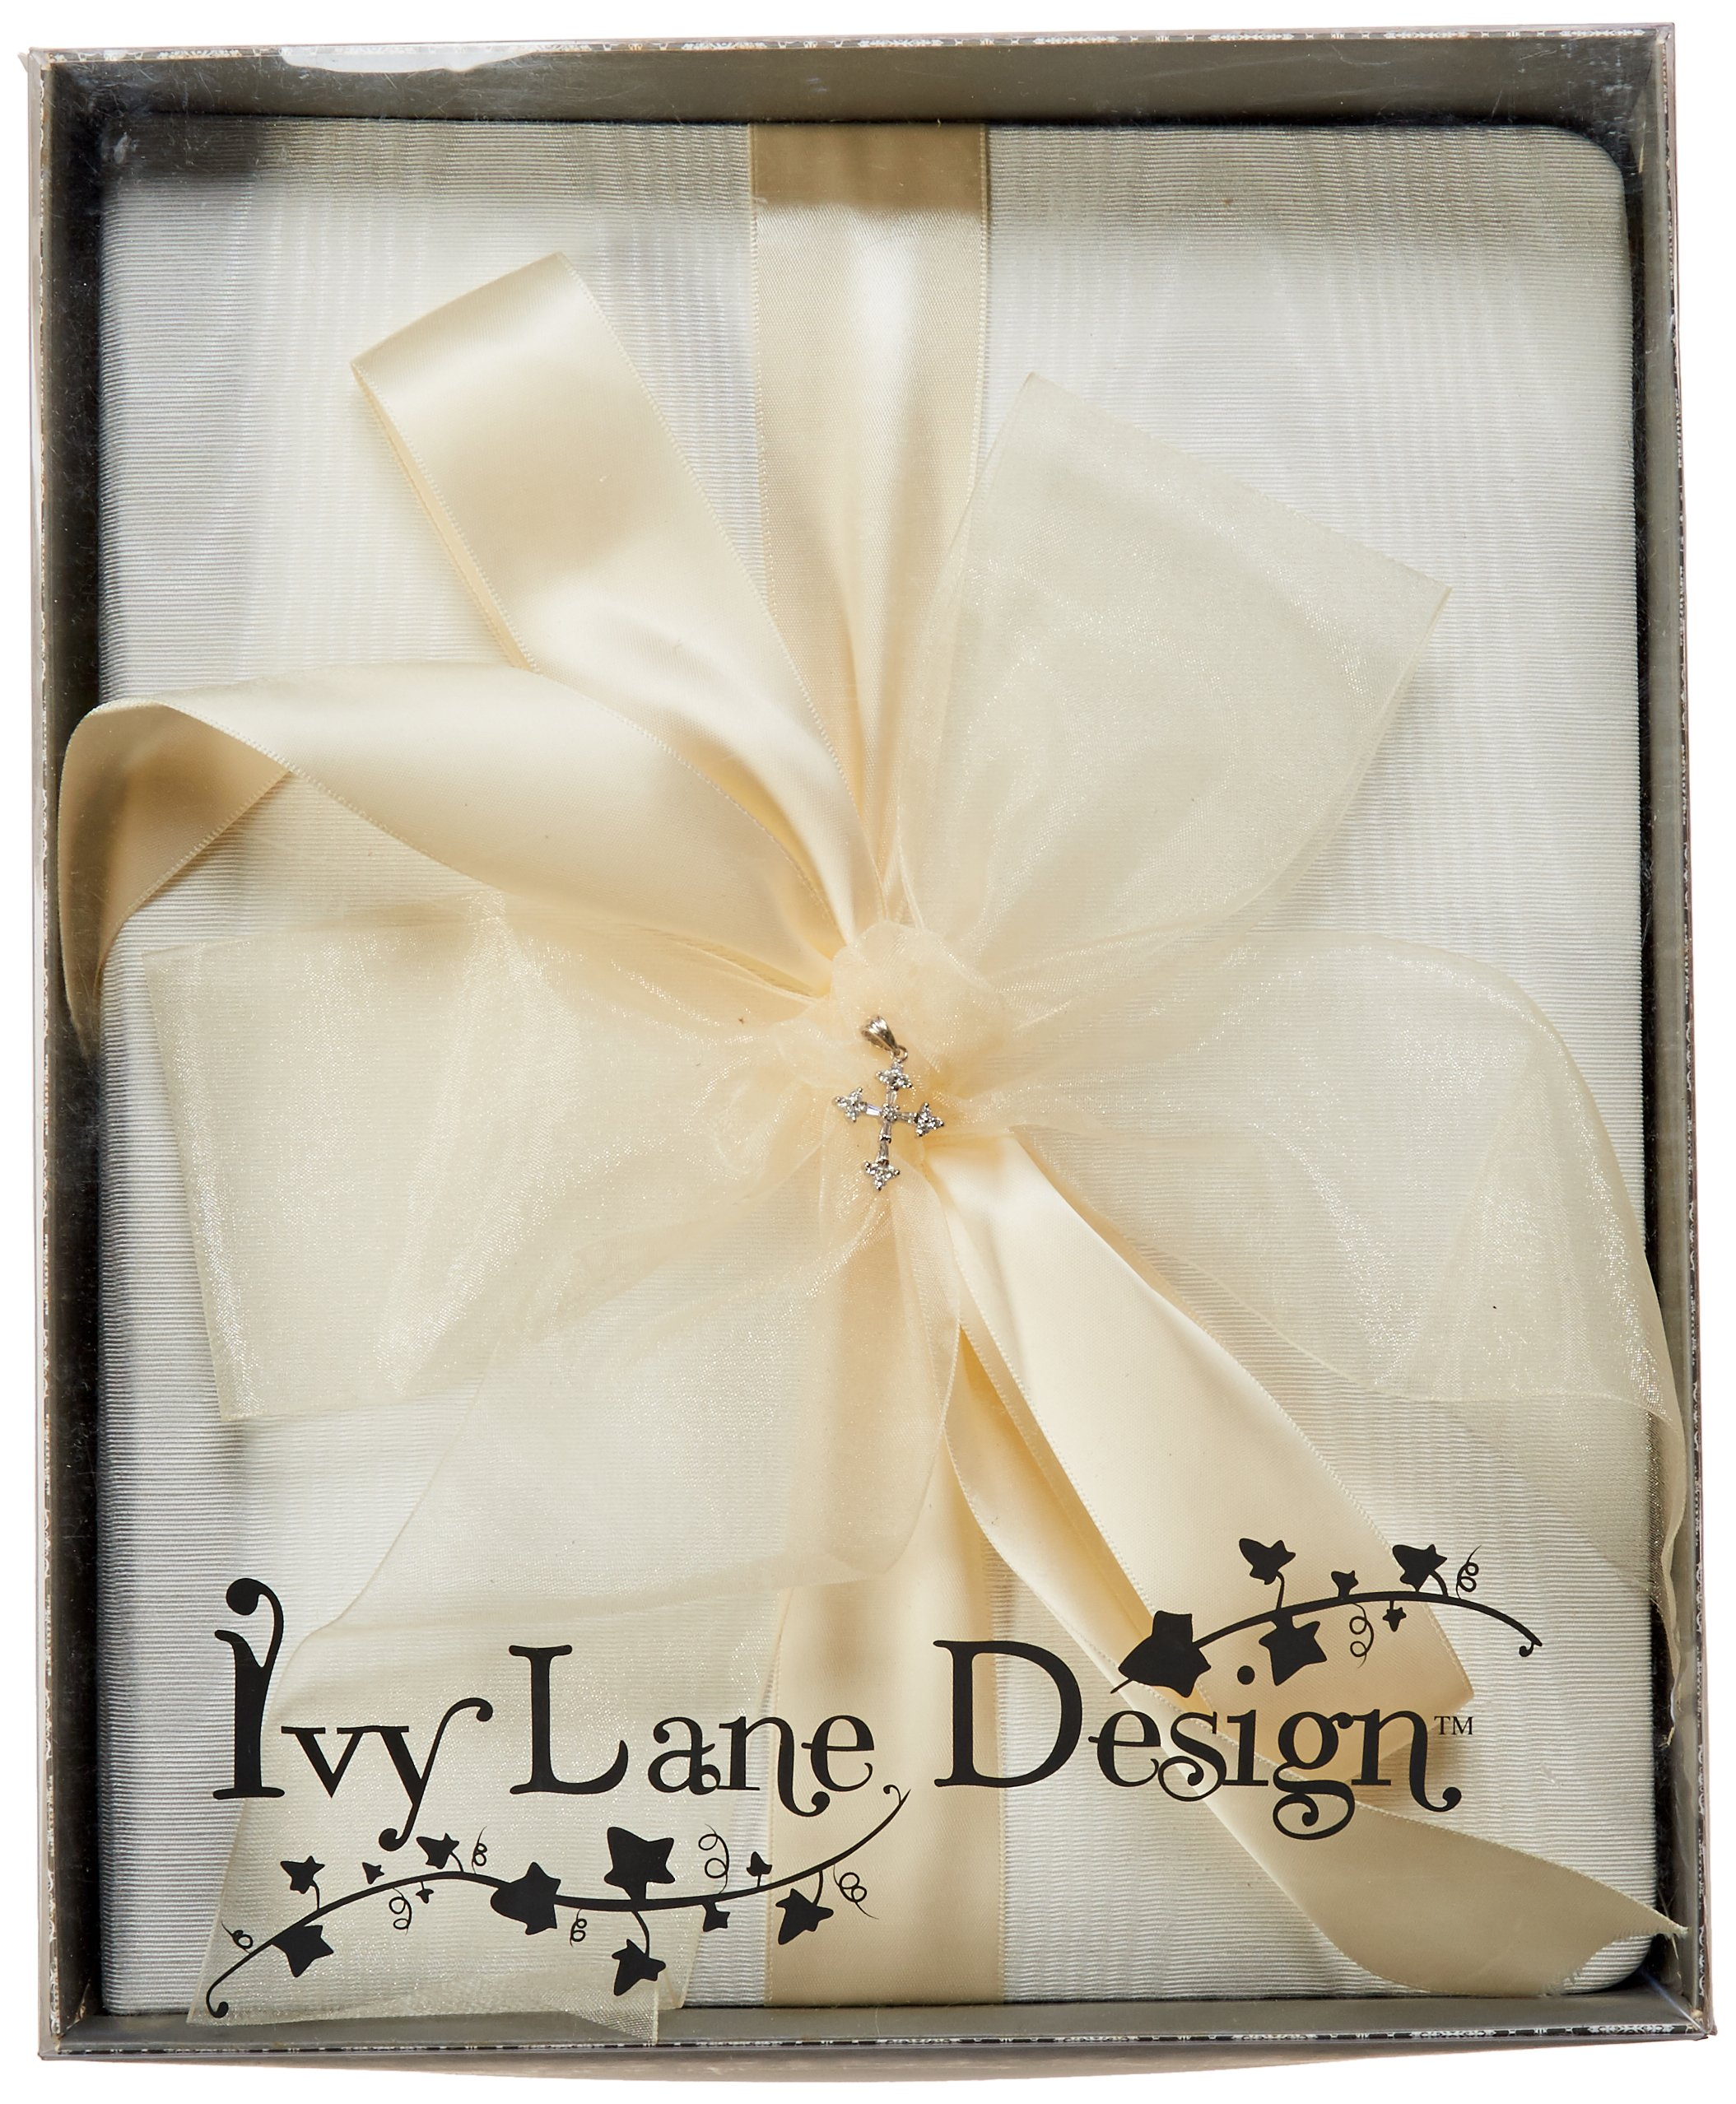 Beverly Clark Collection Grace, Memory Book with Crystal Cross, Ivory by Ivy Lane Designs (Image #5)